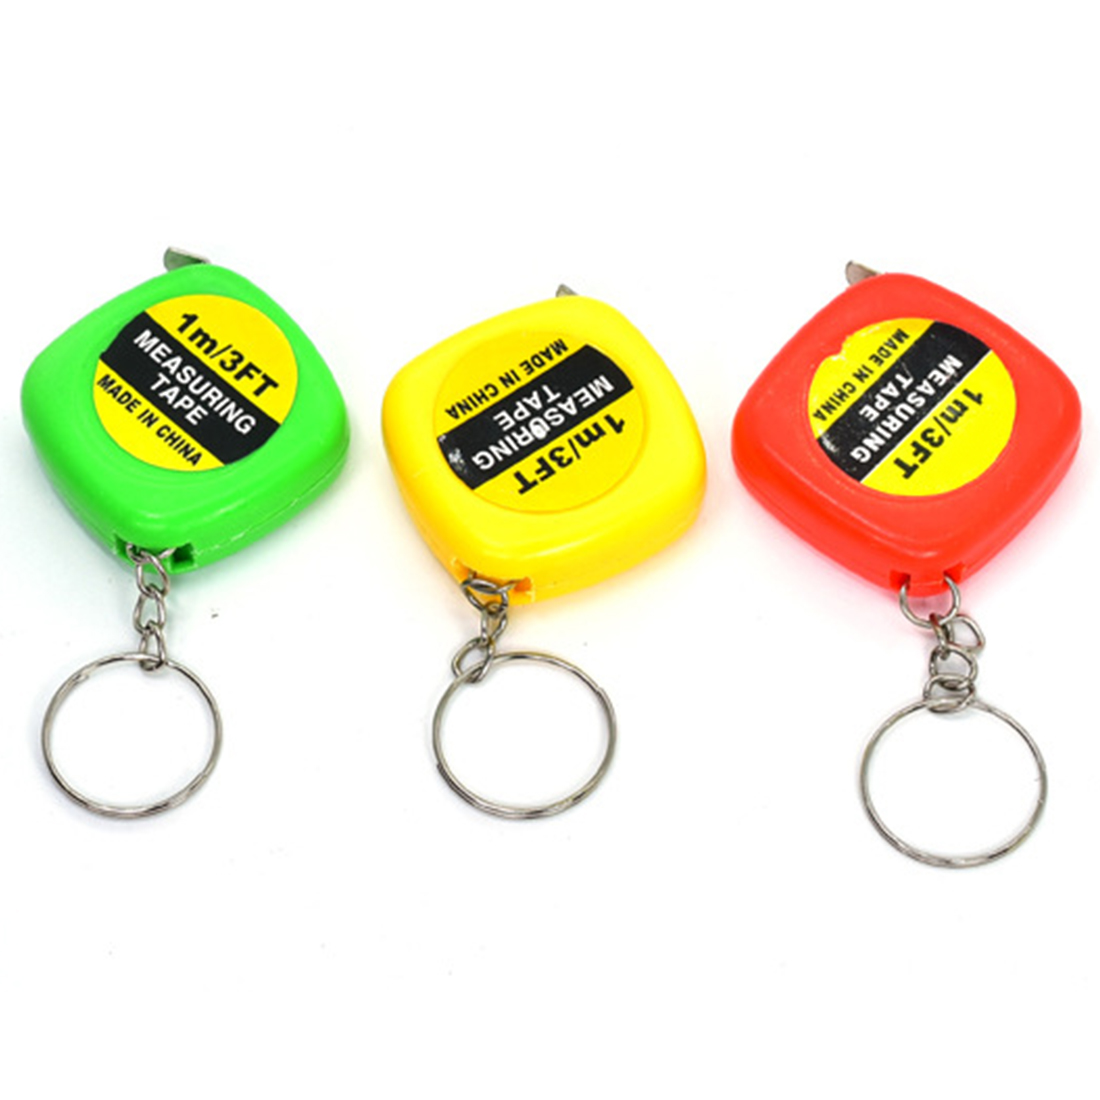 NEW 1pc 1m/3ft Easy Retractable Ruler Tape Measure Mini Portable Pull Ruler Keychain Color Random random color ball flamingo round keychain